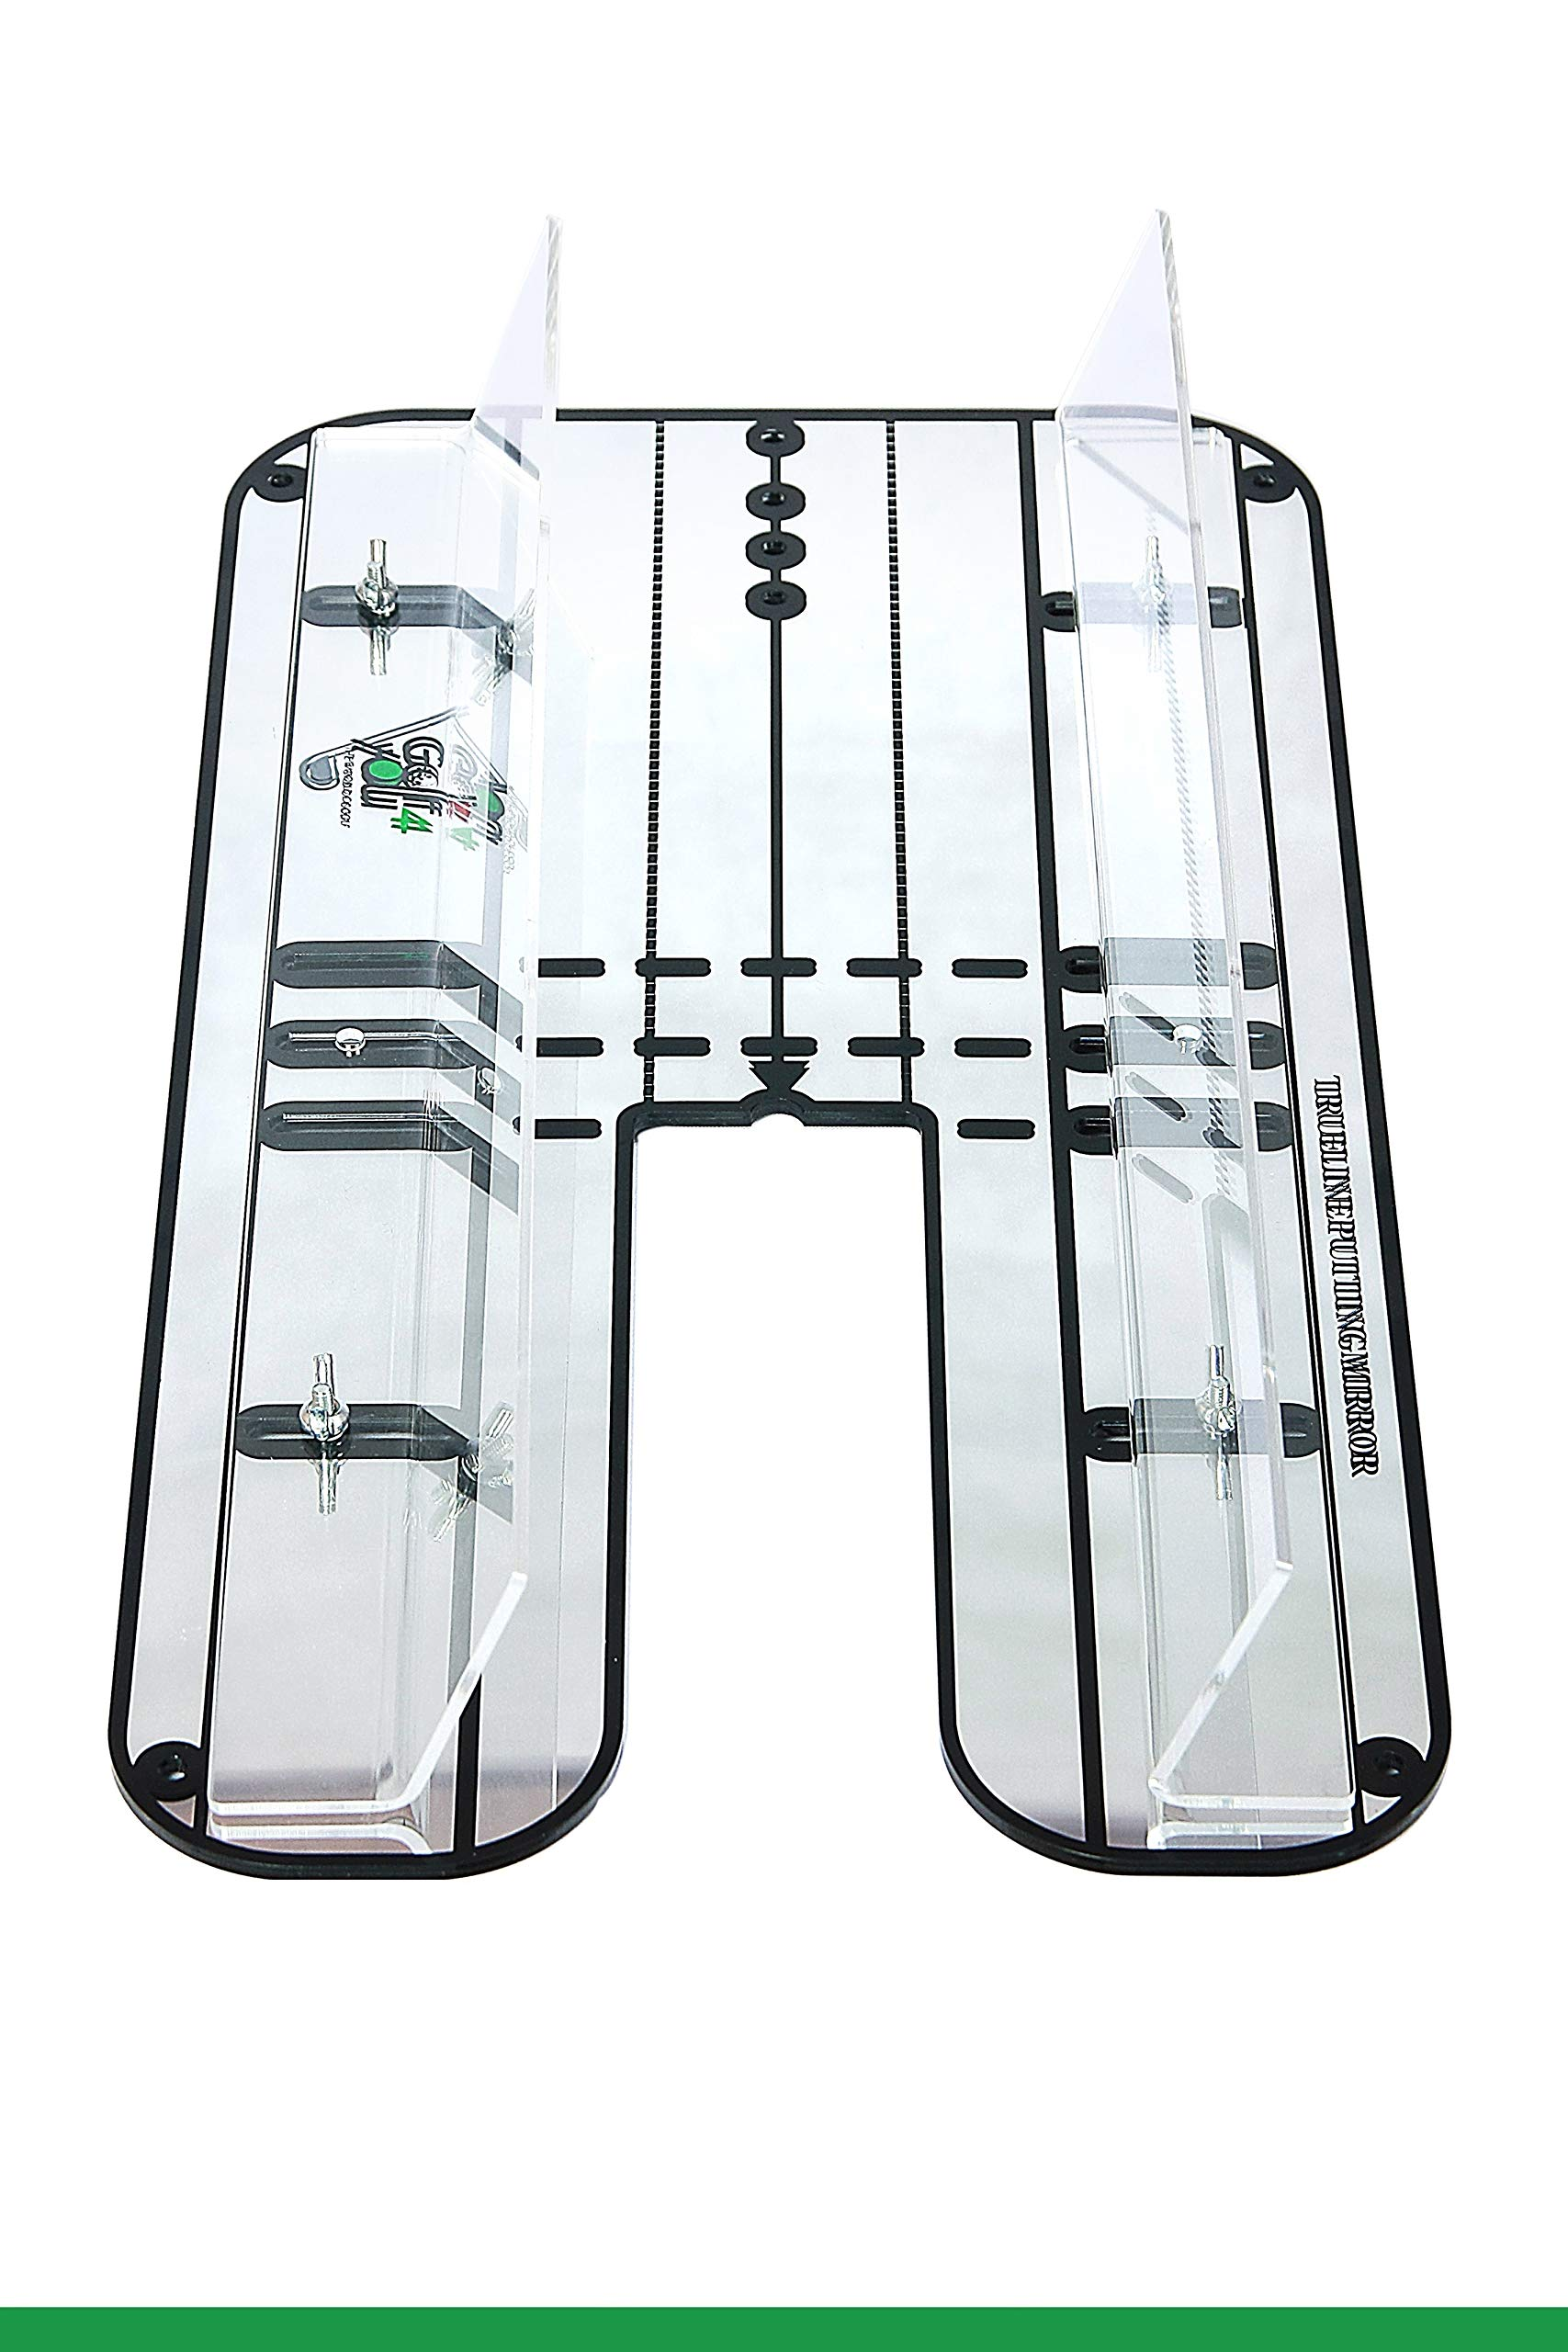 Golf Training Aid, Putting Set - XL Alignment Mirror Design with Our Exclusive Clear Adjustable Guide Rails ''True Line Putting Mirror'' - Leading Practice Aid for On-Line, Consistent Putting Stroke by GOLF4 YOU THE WORLD OF GOLF (Image #3)